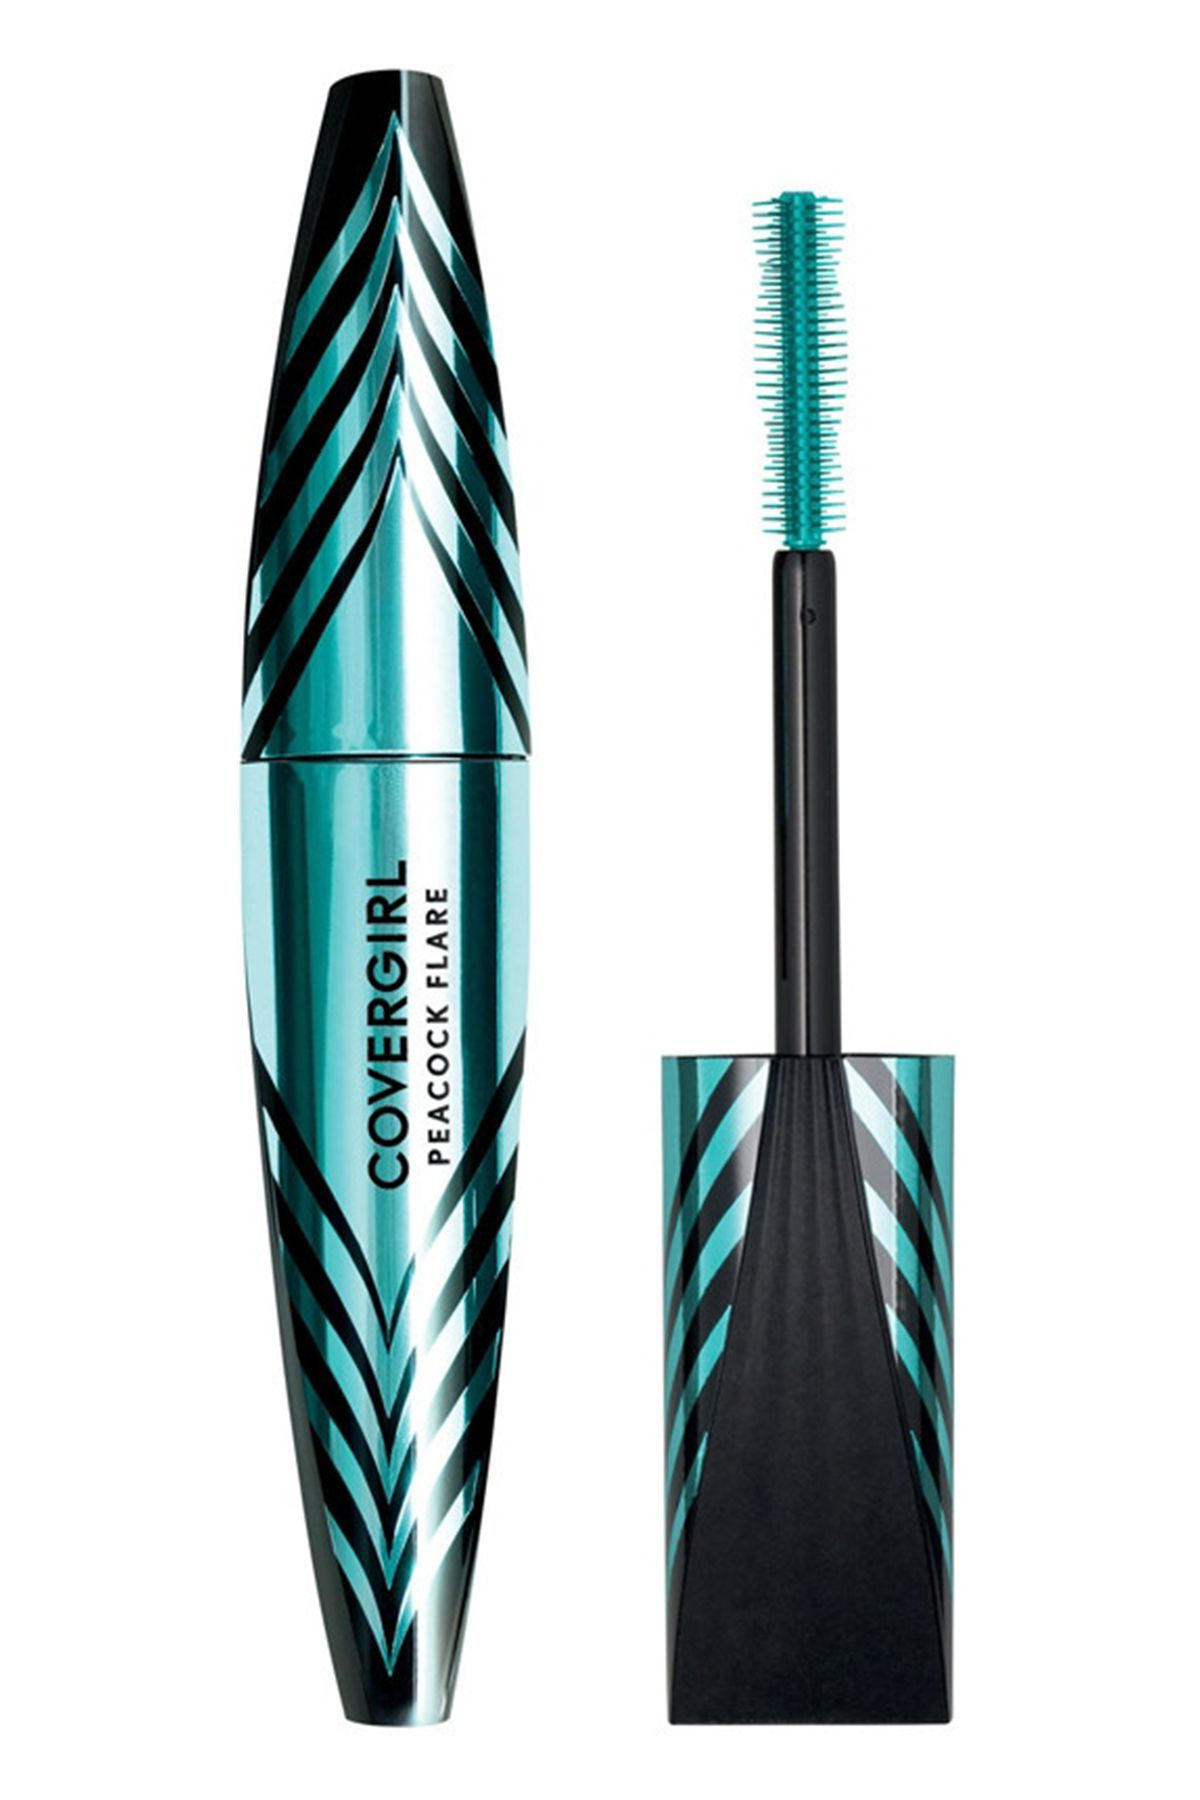 c7ff2bccc99 6 Best Waterproof Mascaras 2019 - Top Rated Smudge Proof Mascara Reviews